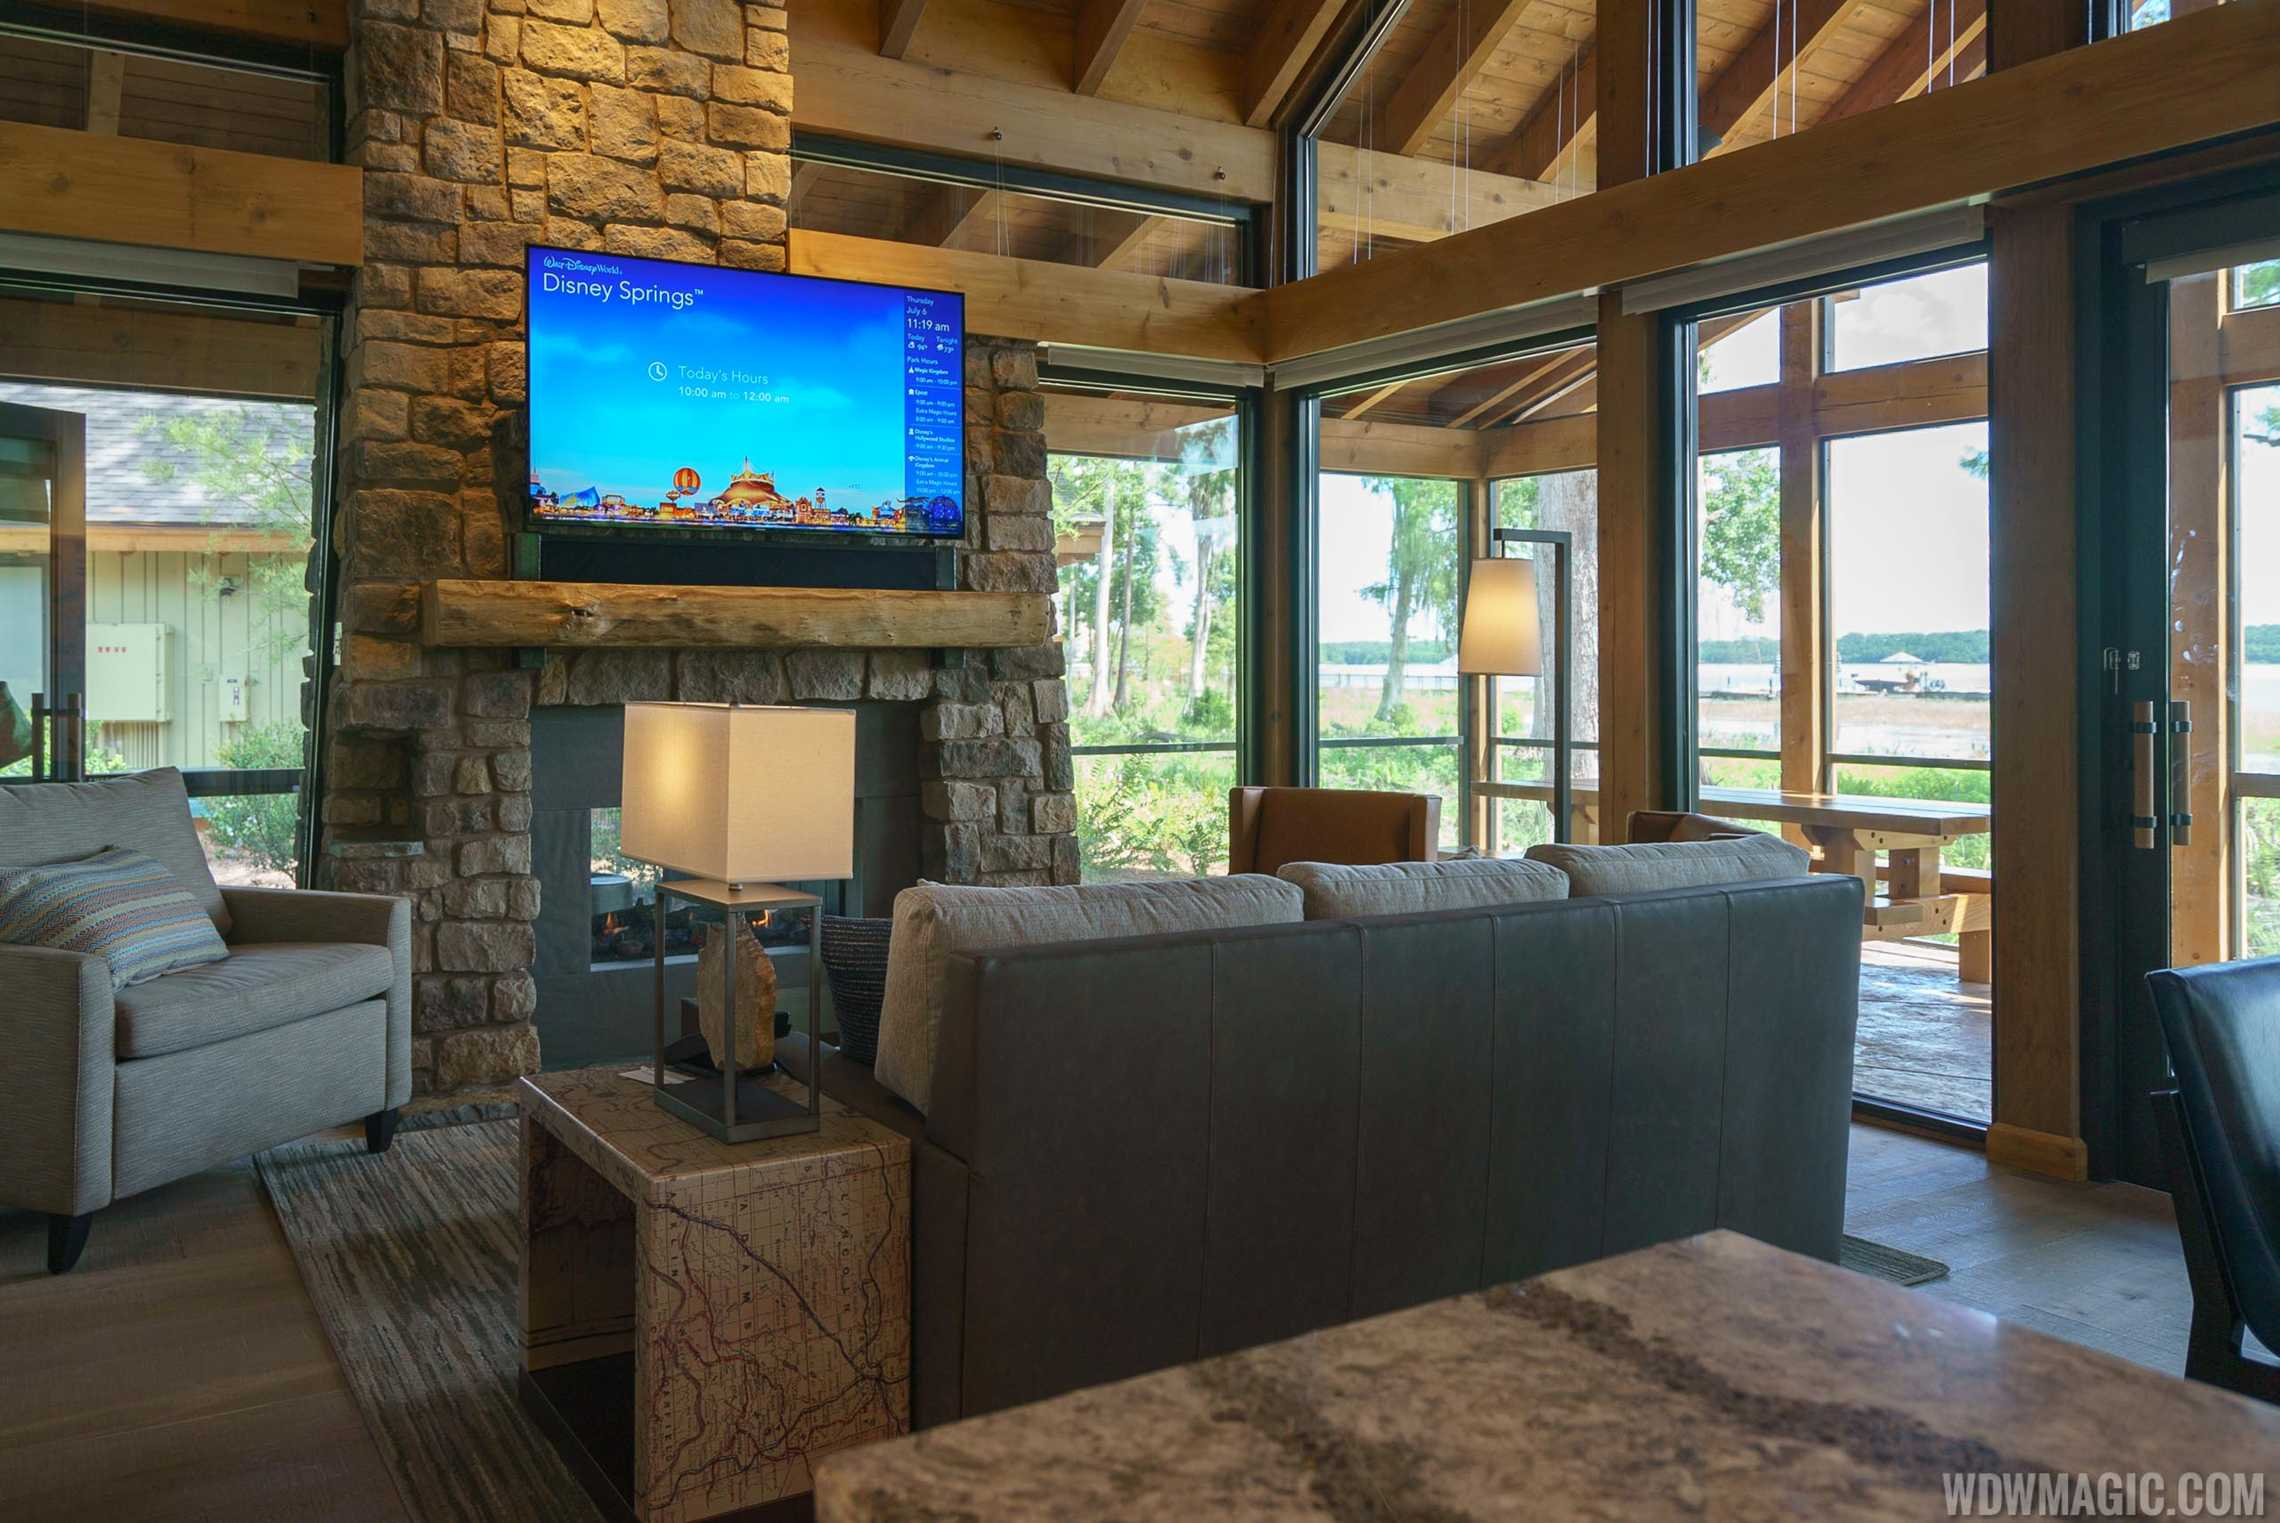 You could gift someone a stay at Copper Creek Villas and Cabins at Disney's Wilderness Lodge